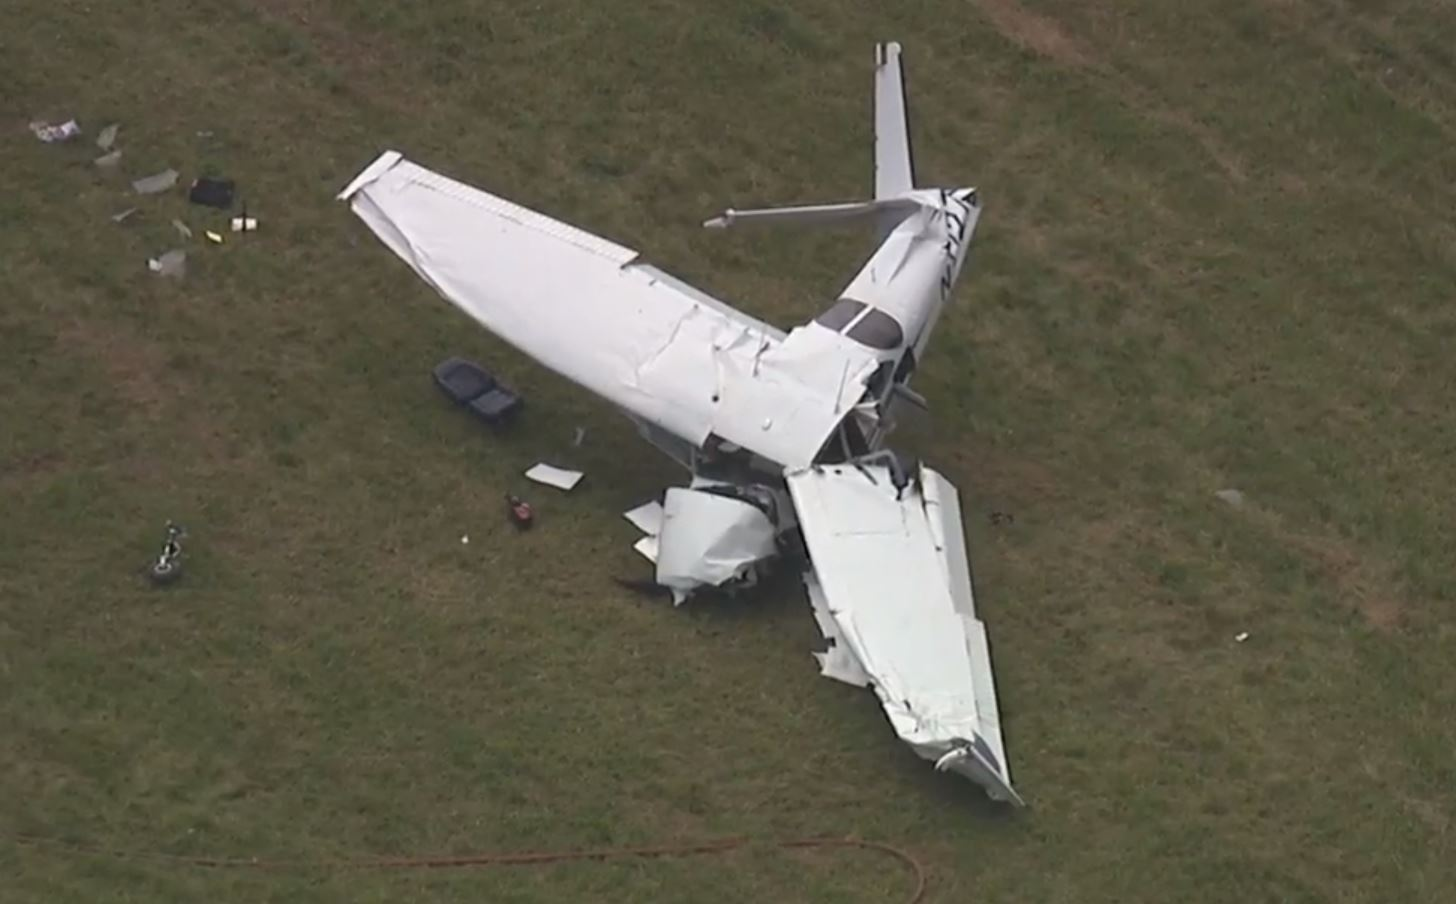 Dead, 2 Injured in Conn. Small Plane Crash